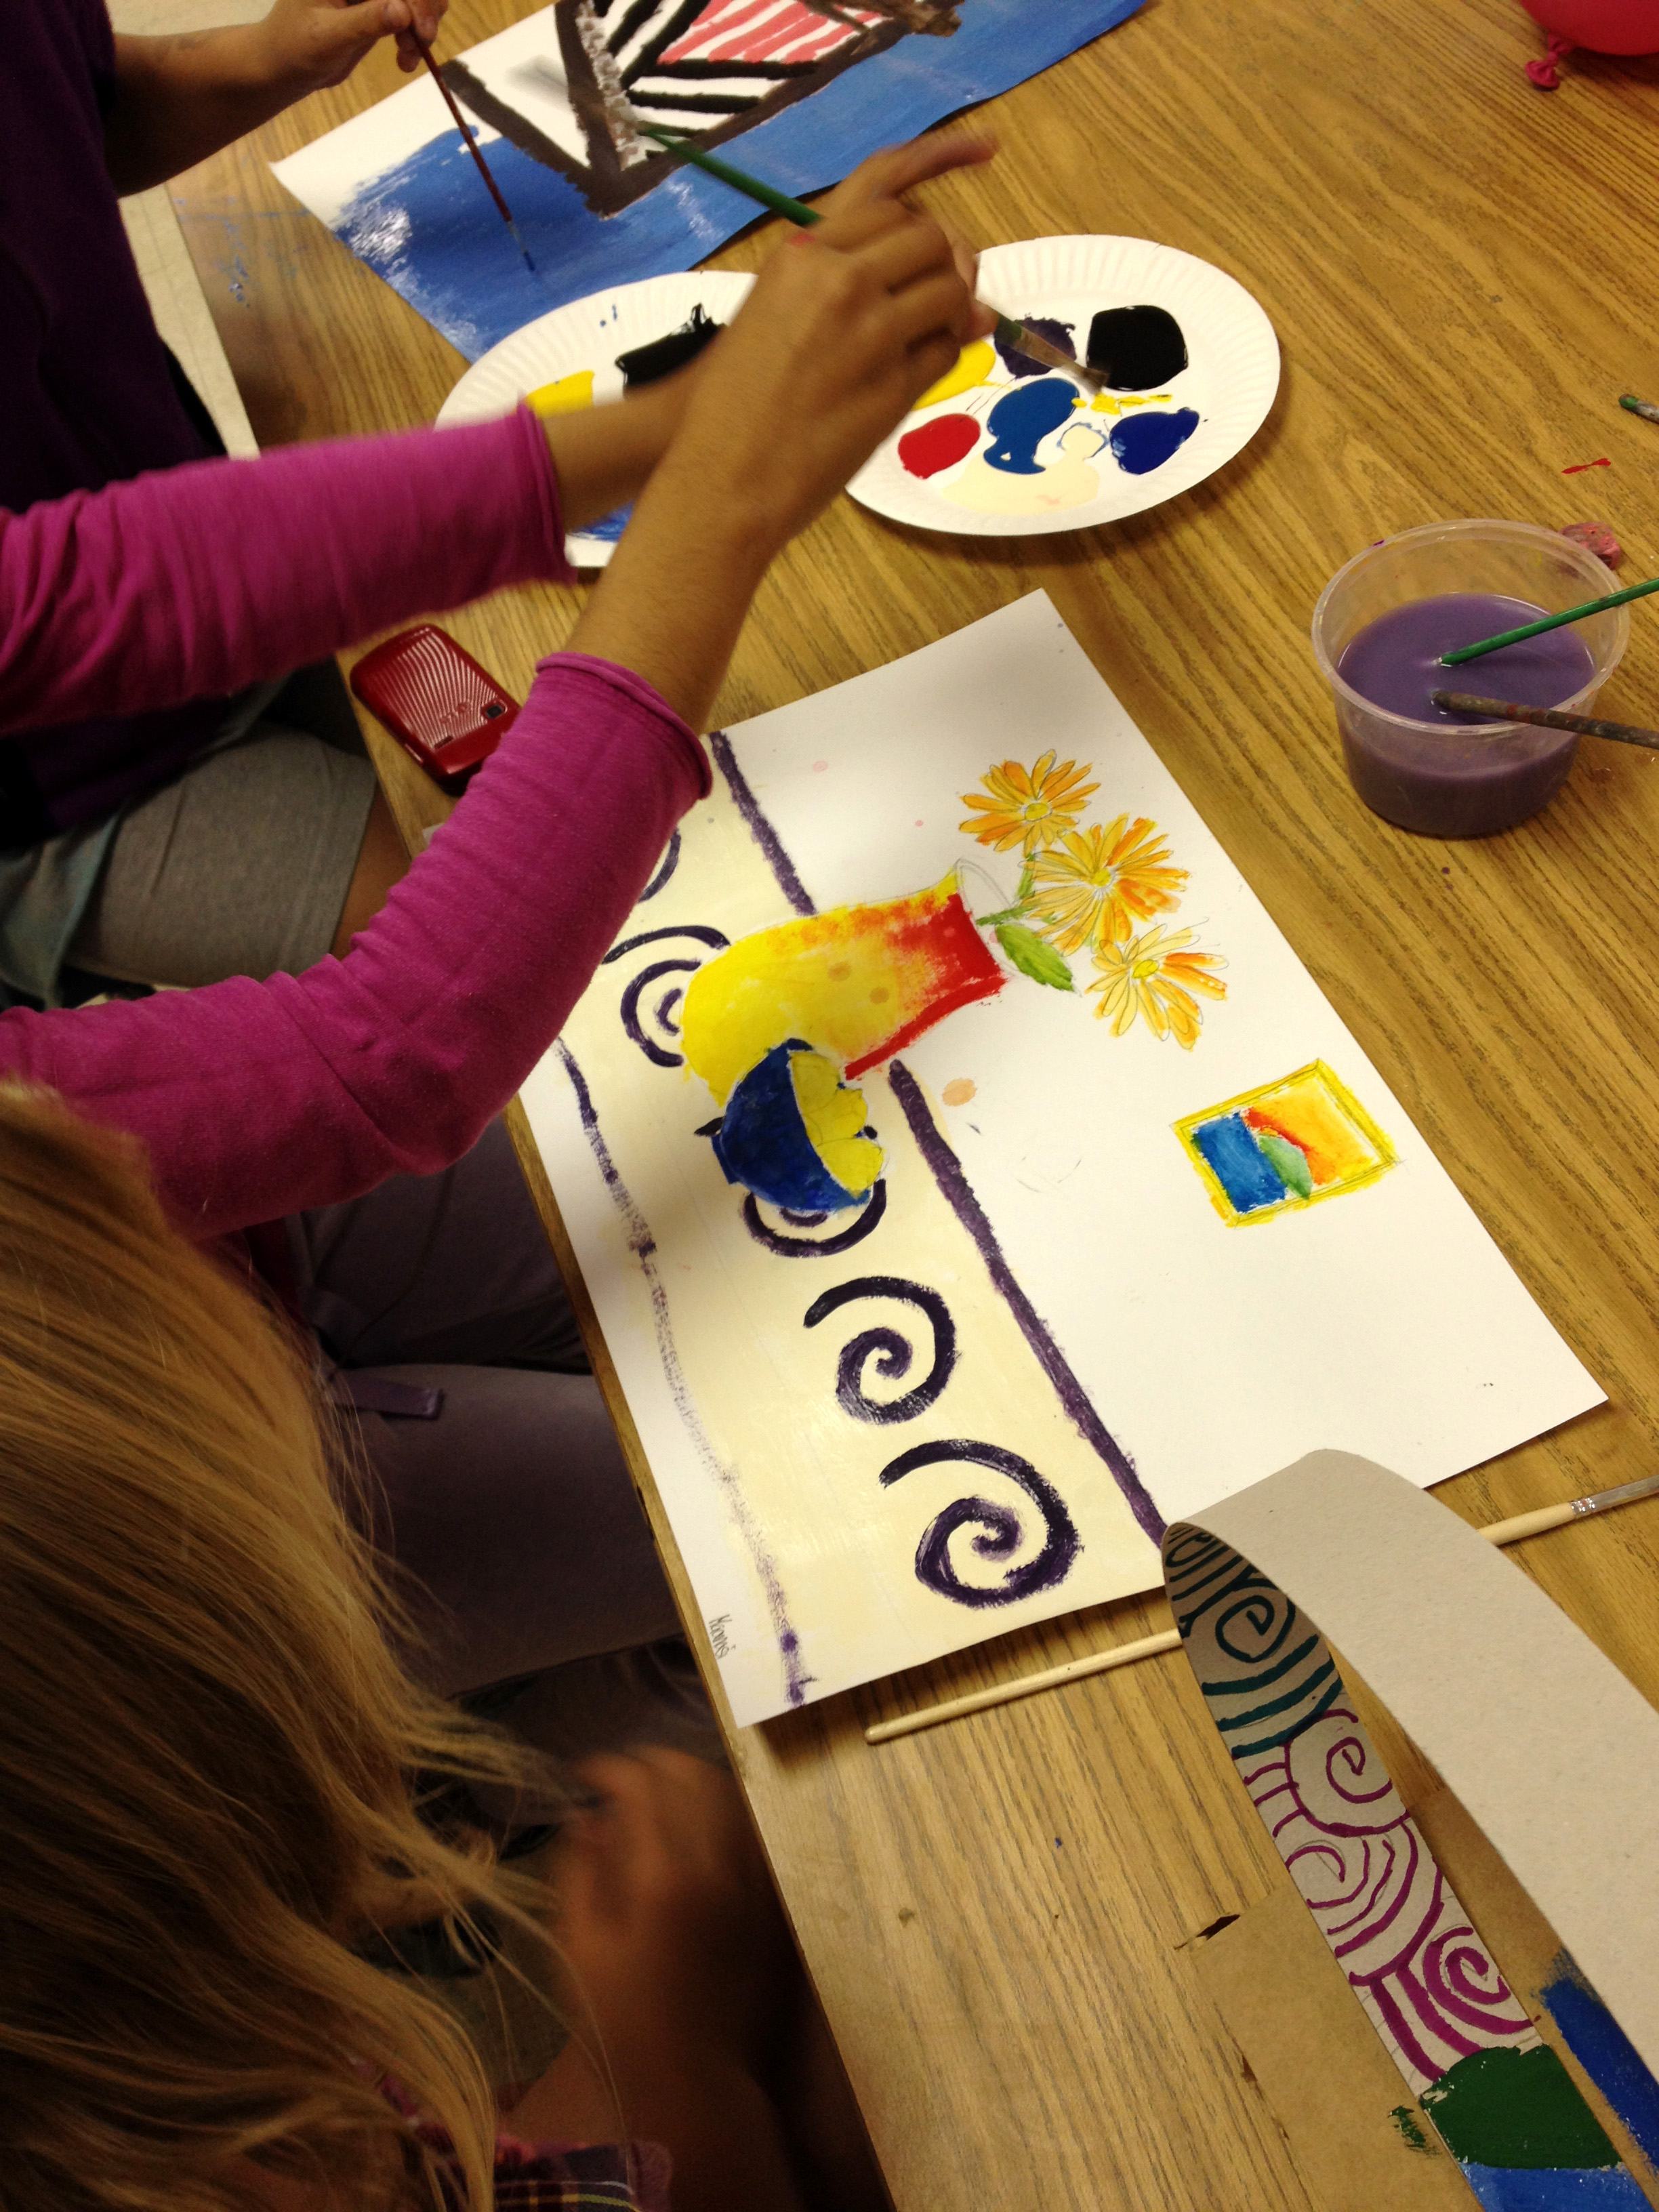 These girls are hard at work creating patterns and painting flowers.